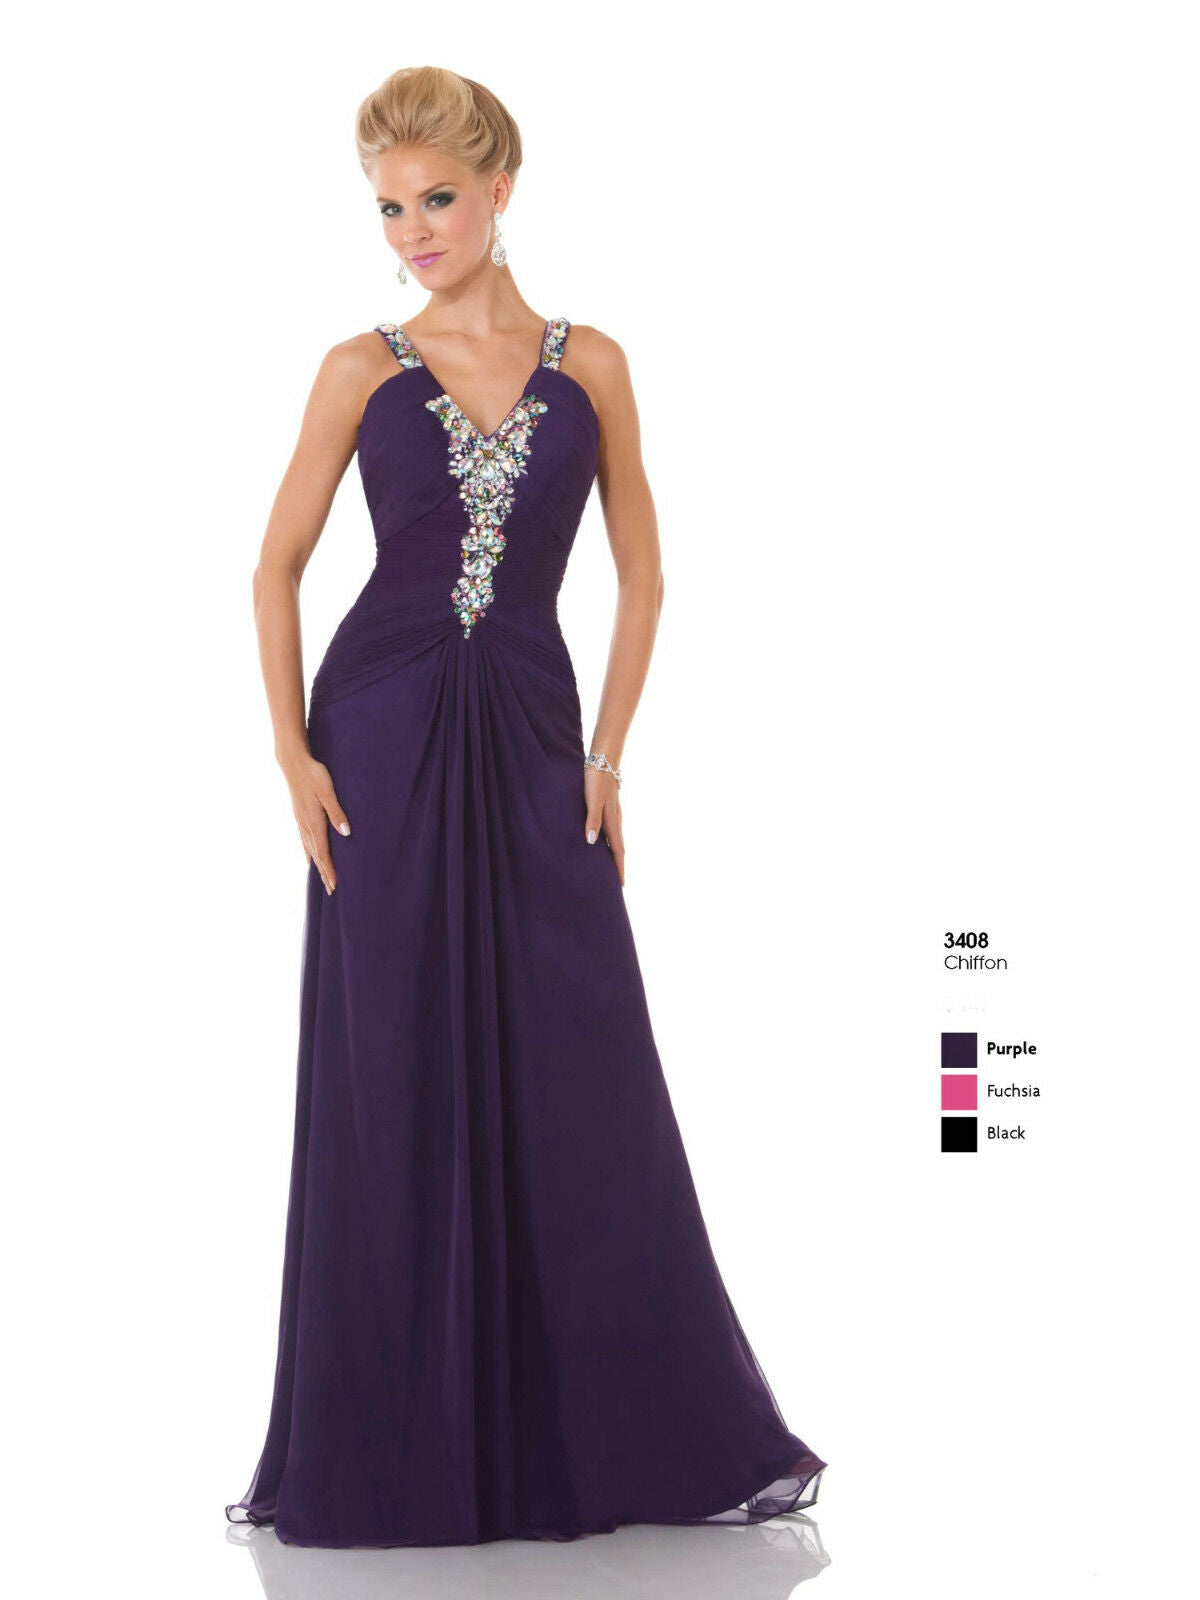 Mystique Chiffon Prom Dress 3408 Purple